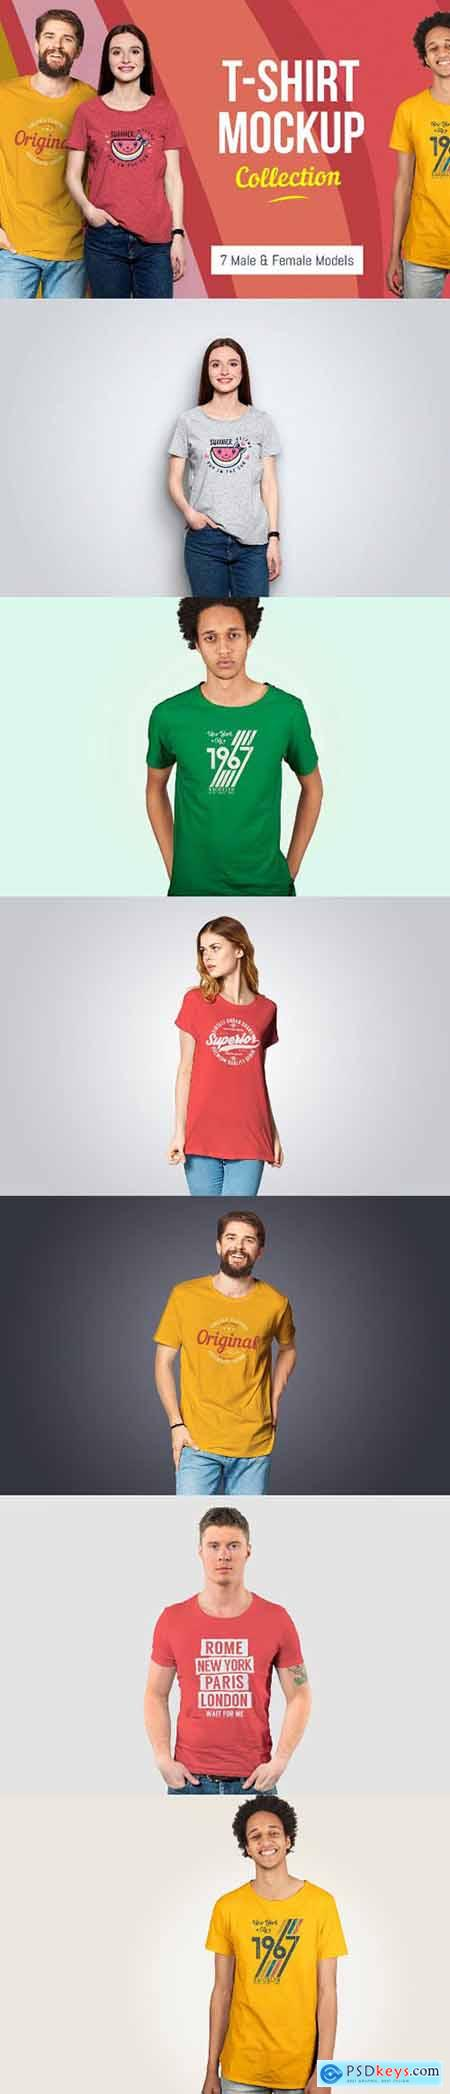 T-Shirt Mockup Collection